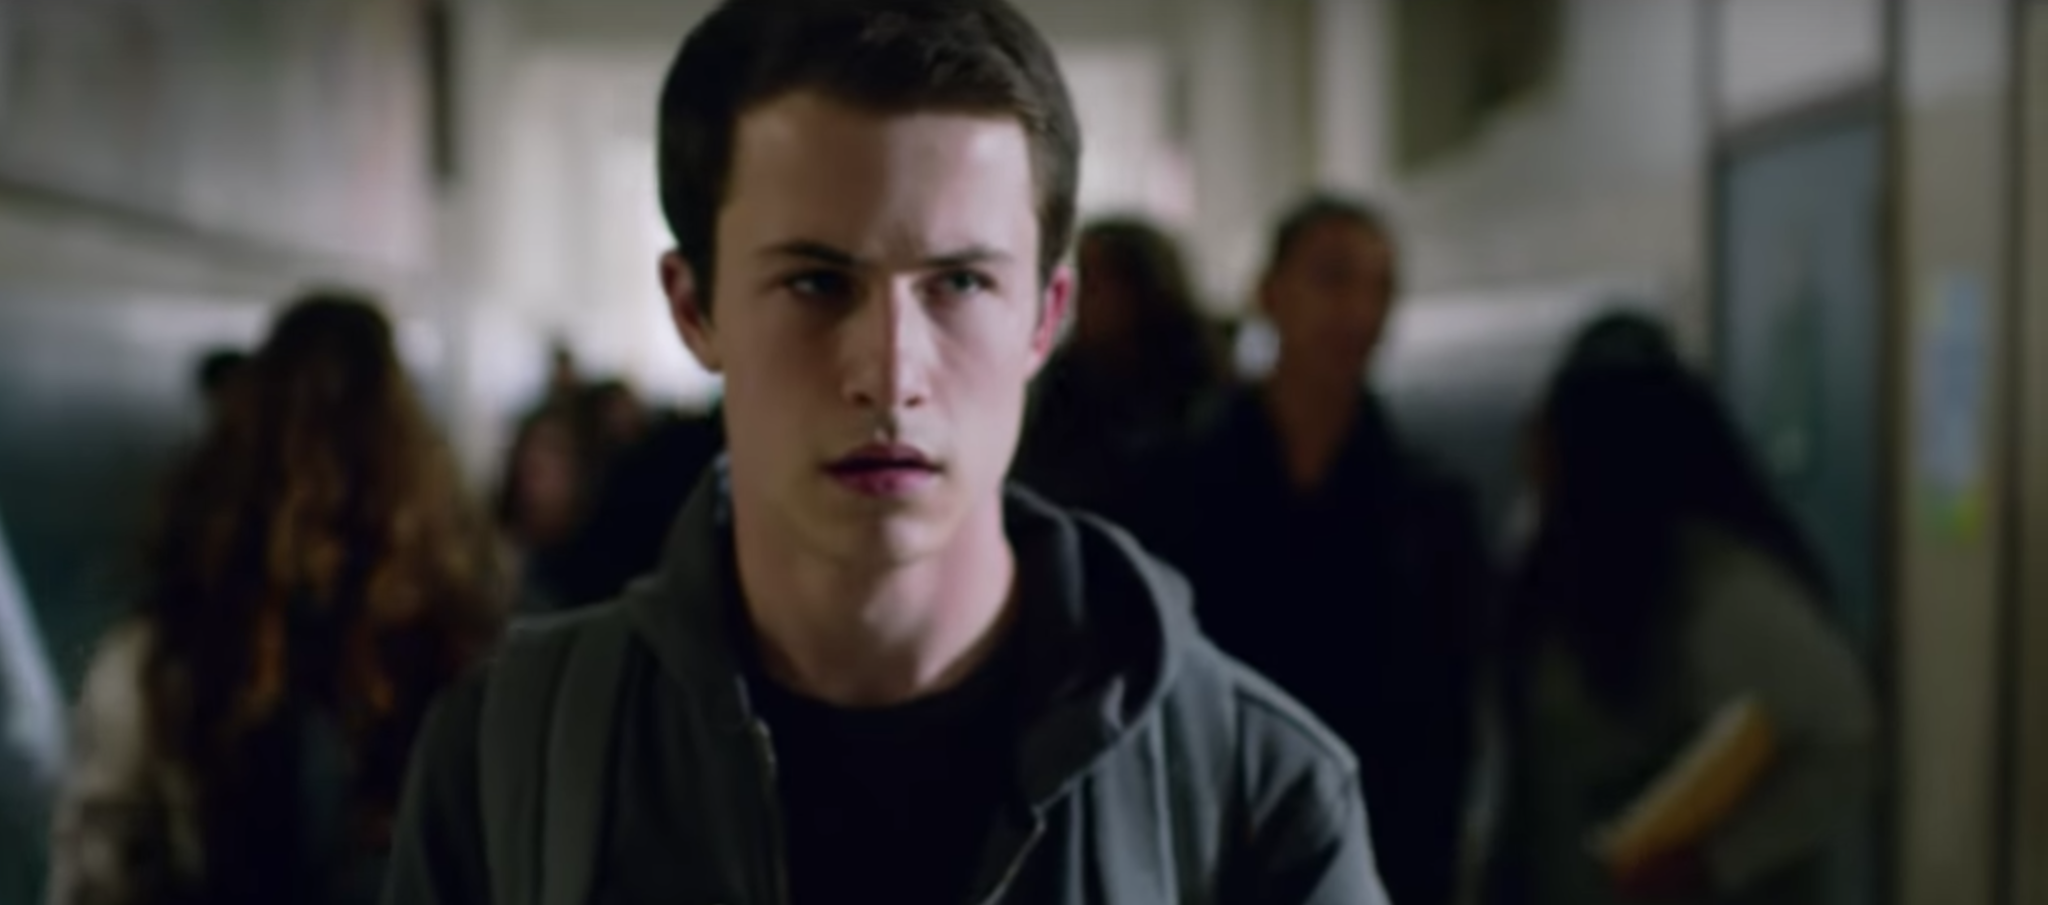 13 Reasons Why Season 2 Trailer Drops Heres What We Know About